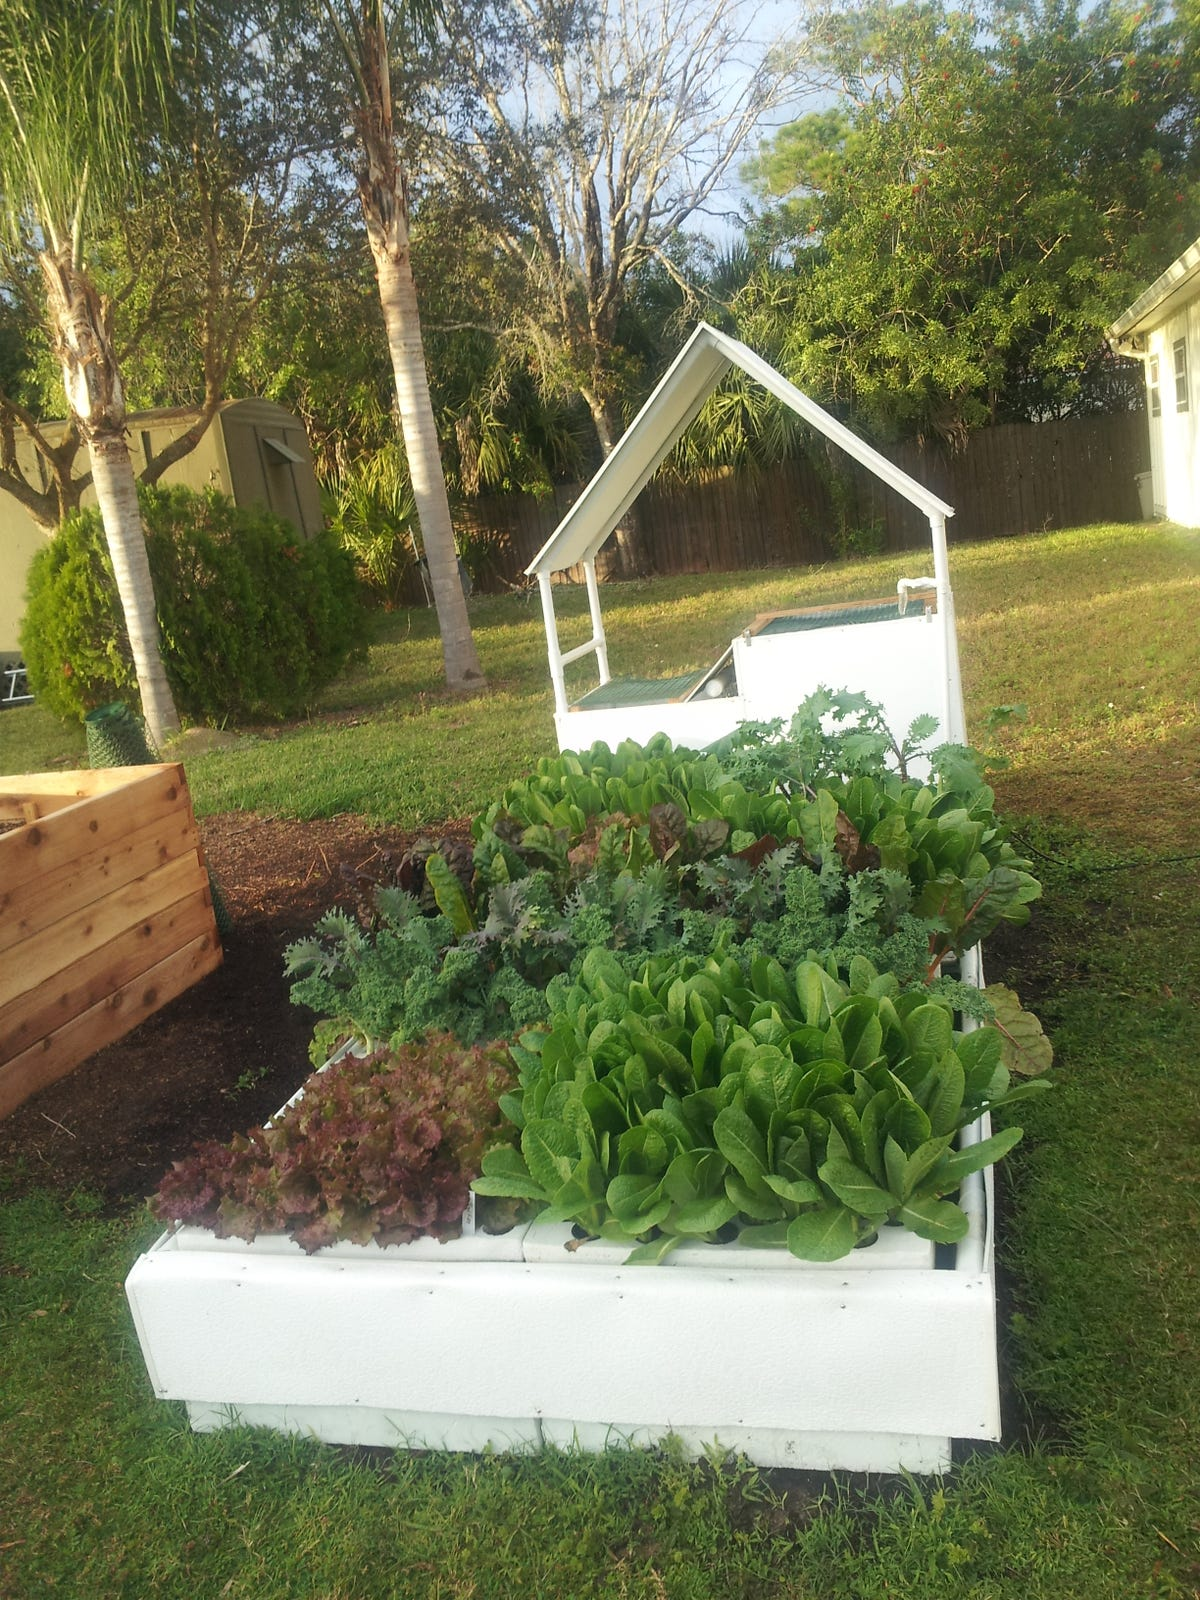 Aquaponic growing systems available for Brevard homes